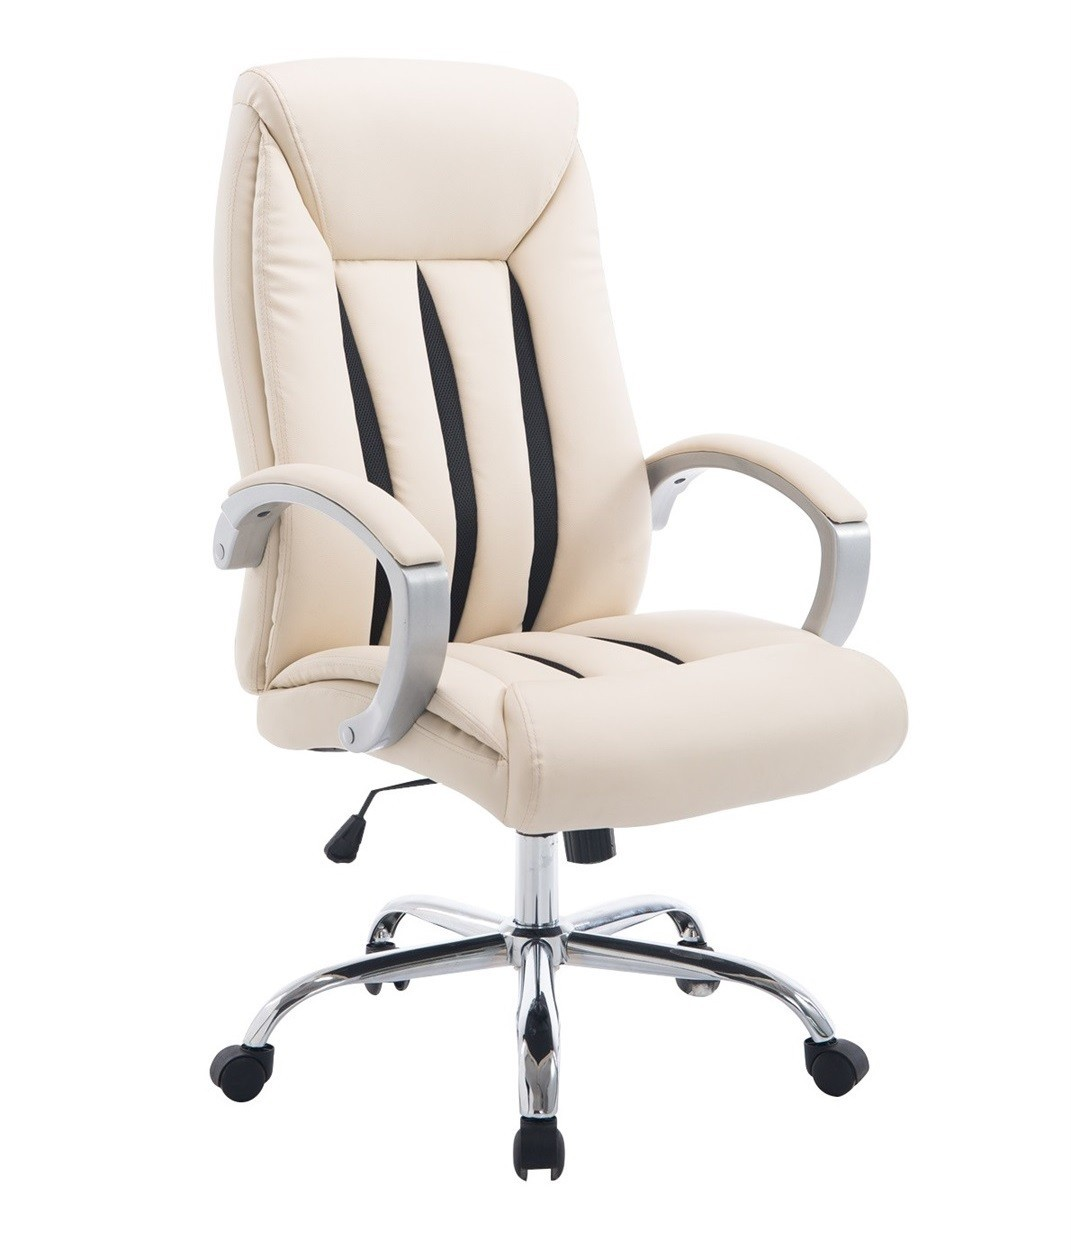 Office Armchair SAPPHIRE, High, Gas, Tilt, Similpiel Beige, Mesh Brown